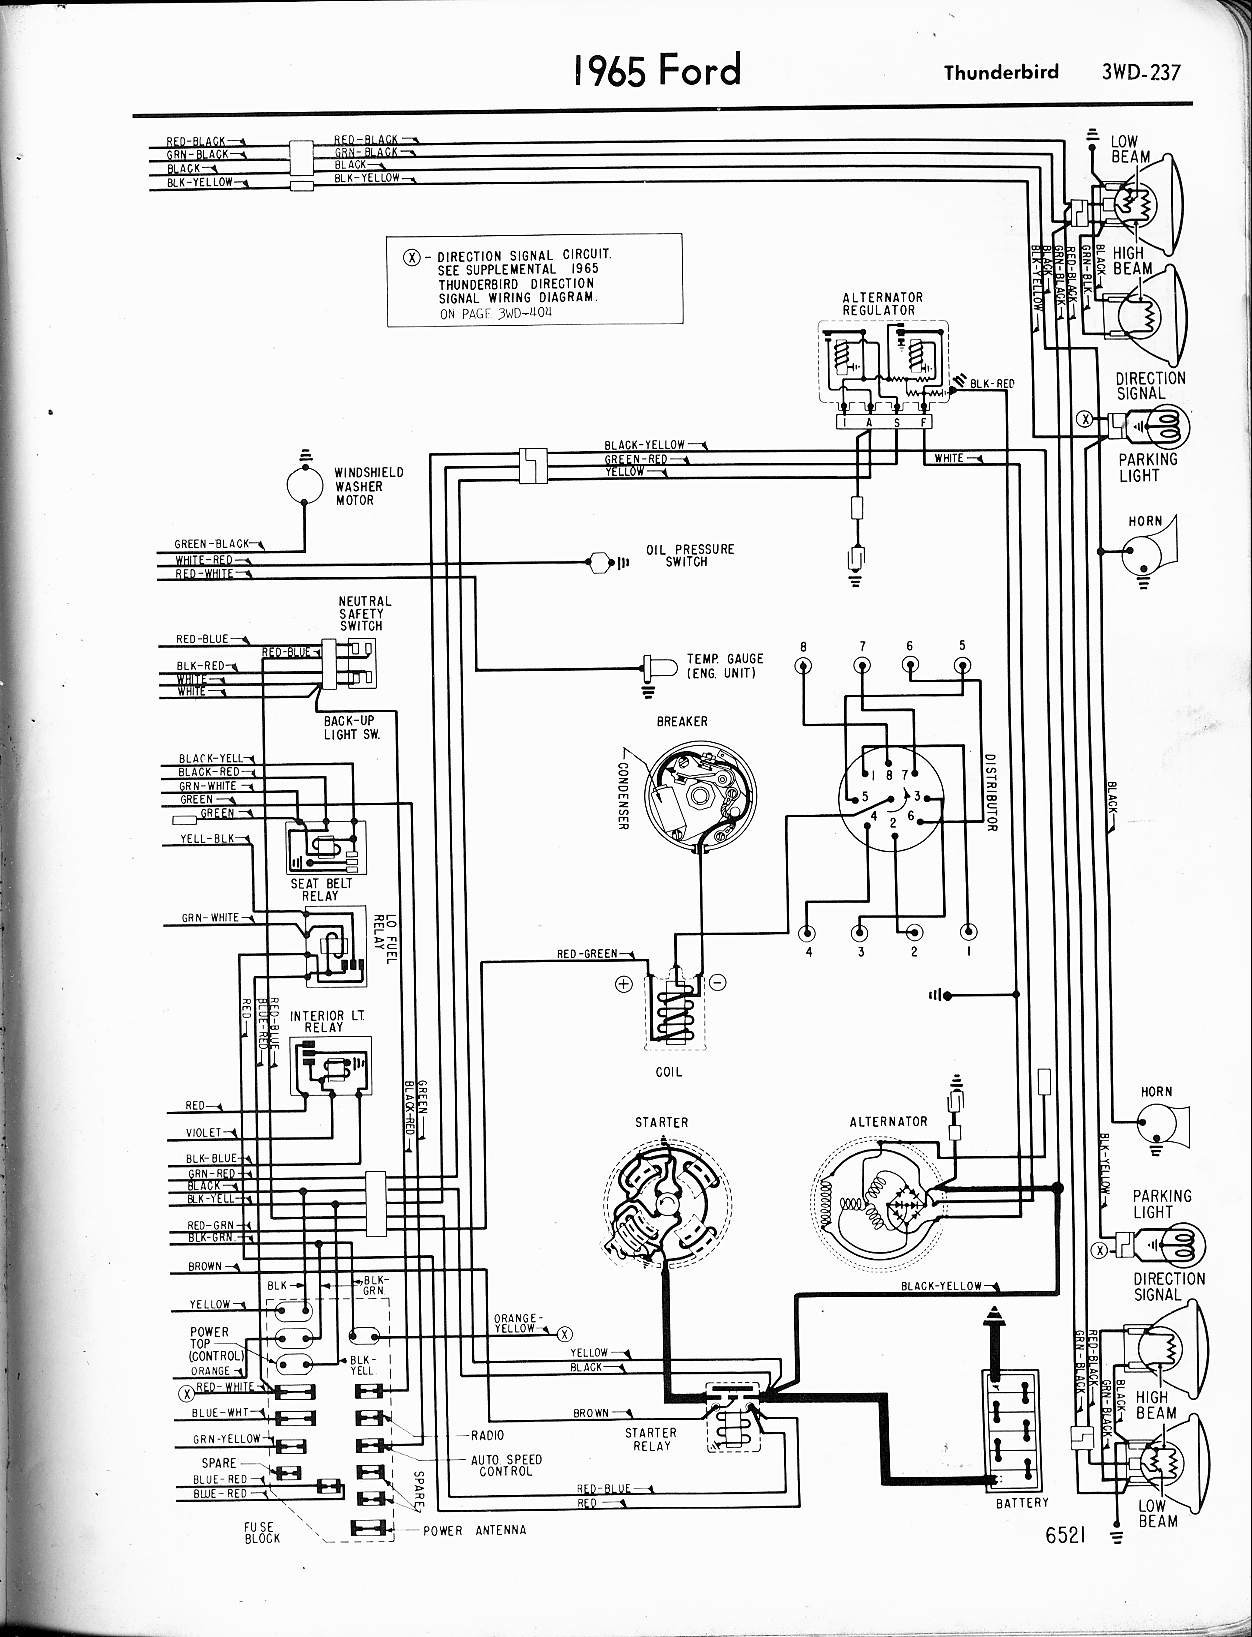 2010 Ford Focus Engine Diagram Wiring Library. Ford Mondeo Engine Diagram Fusion Econoline Wiring Also 1966 Of. Wiring. 2 5 Fusion Engine Diagram At Scoala.co